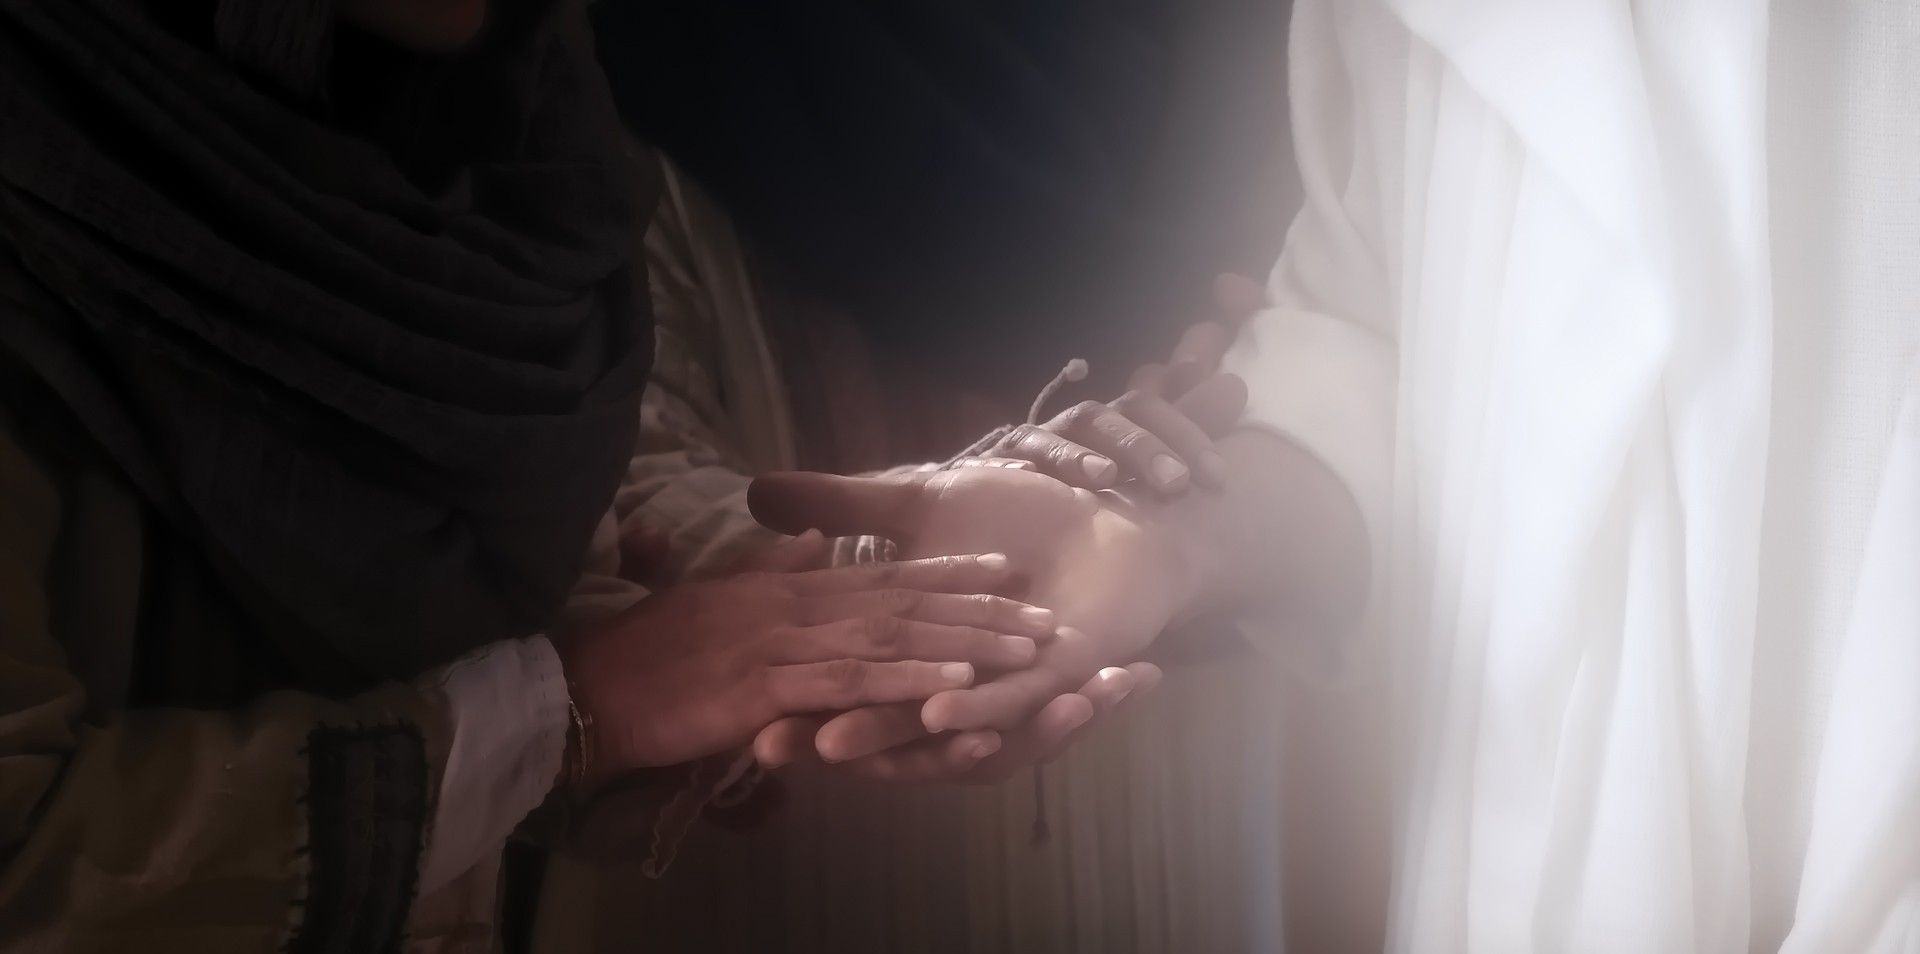 The resurrected Christ invites others to feel His hands.